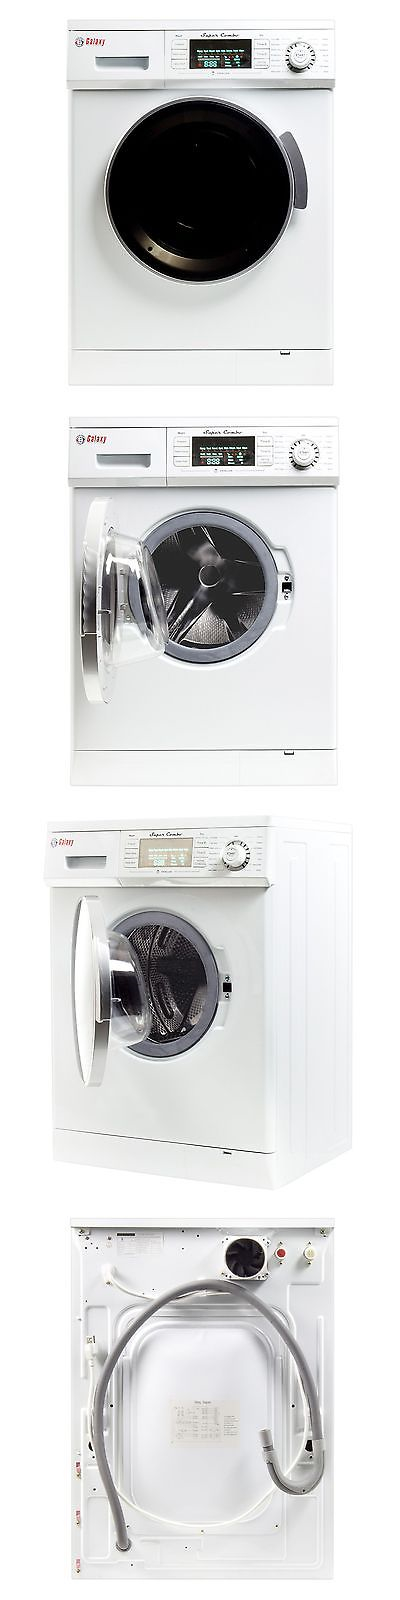 Washer And Dryer Sets 71257 Galaxy 13 Lb Convertible Combo Instant Savings New It Now Only 722 09 On Ebay